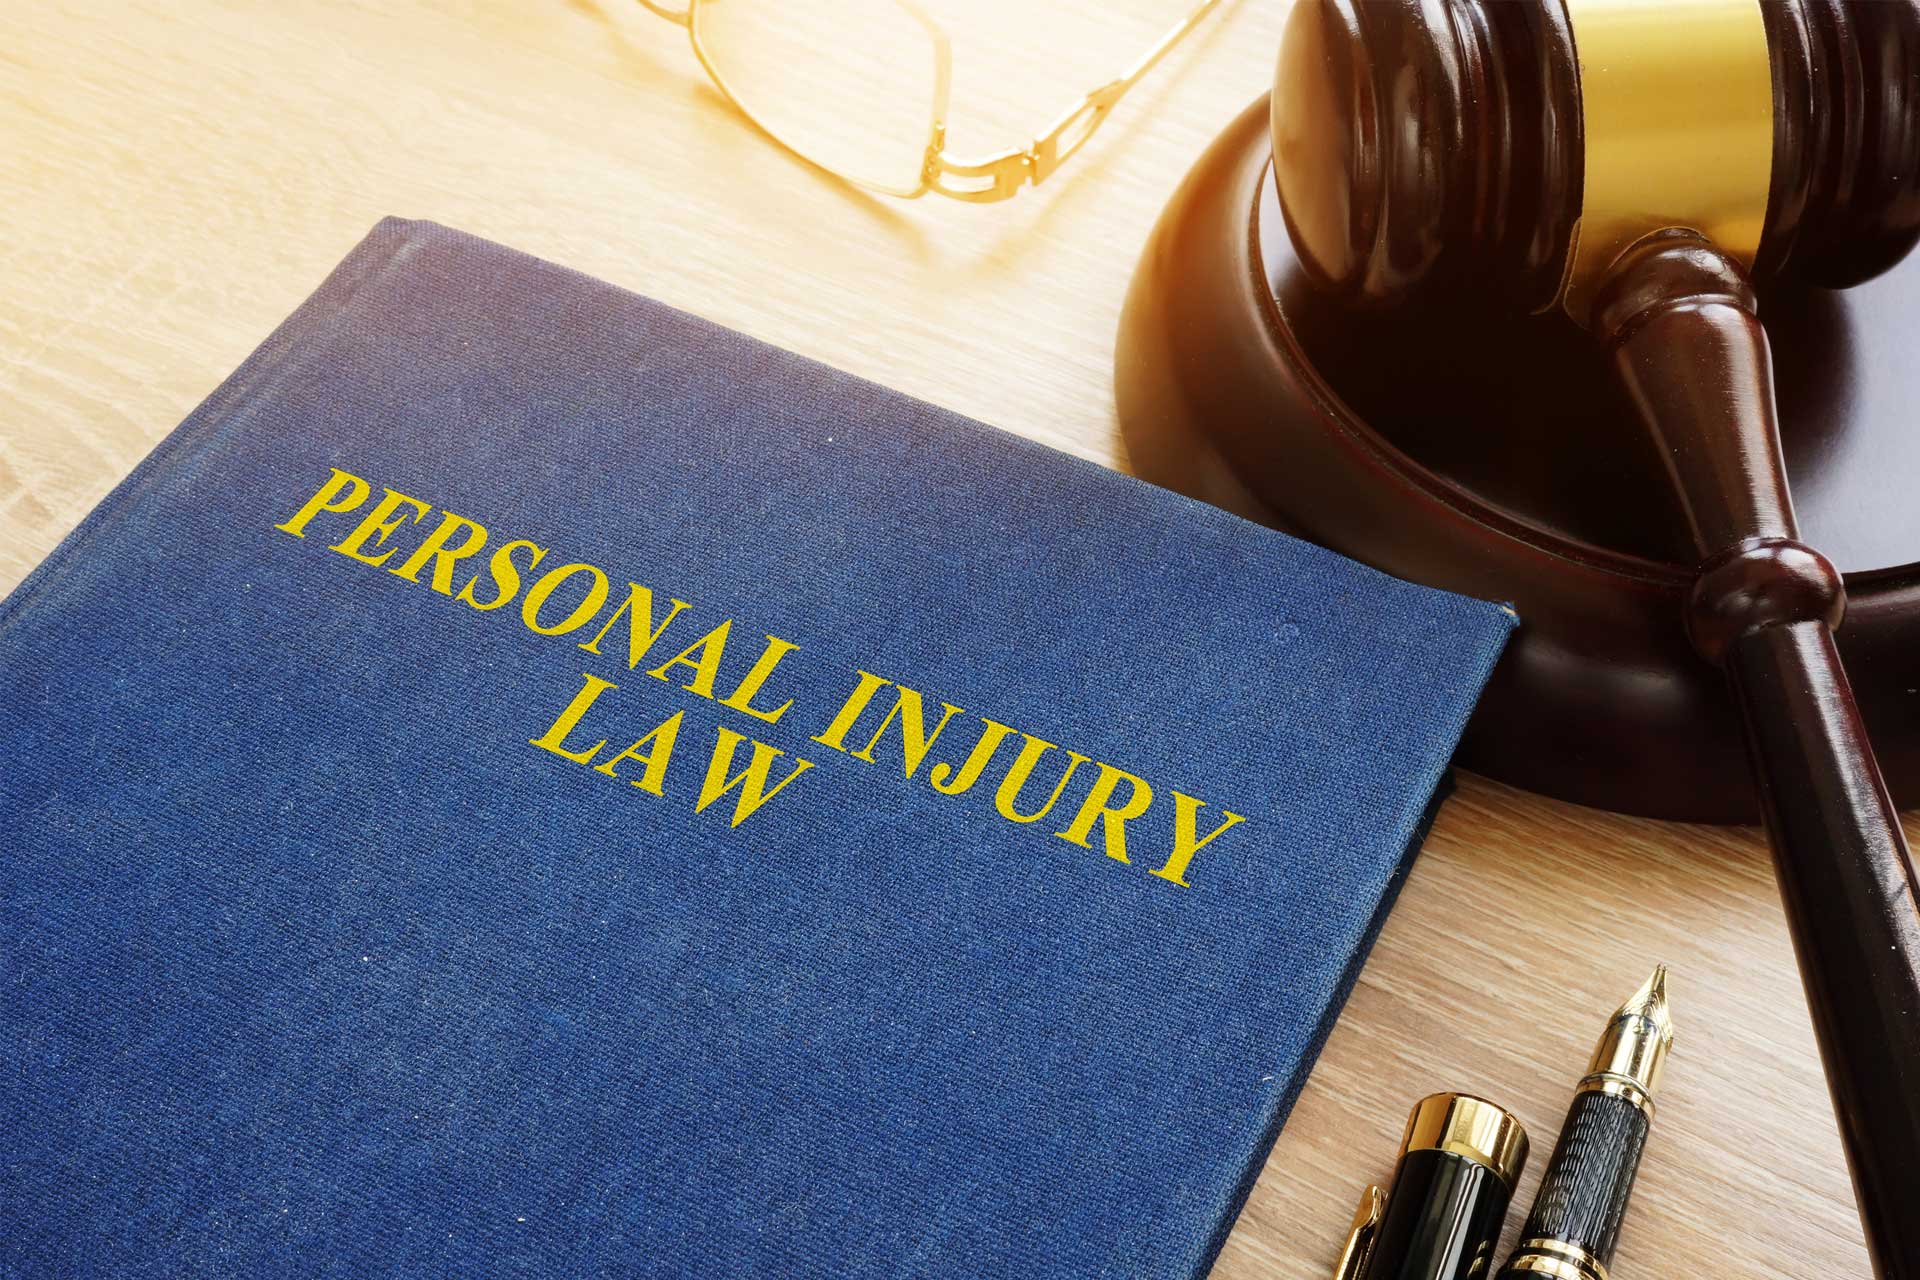 ersonal Injury Attorney in Saugus & East Longmeadow, MA